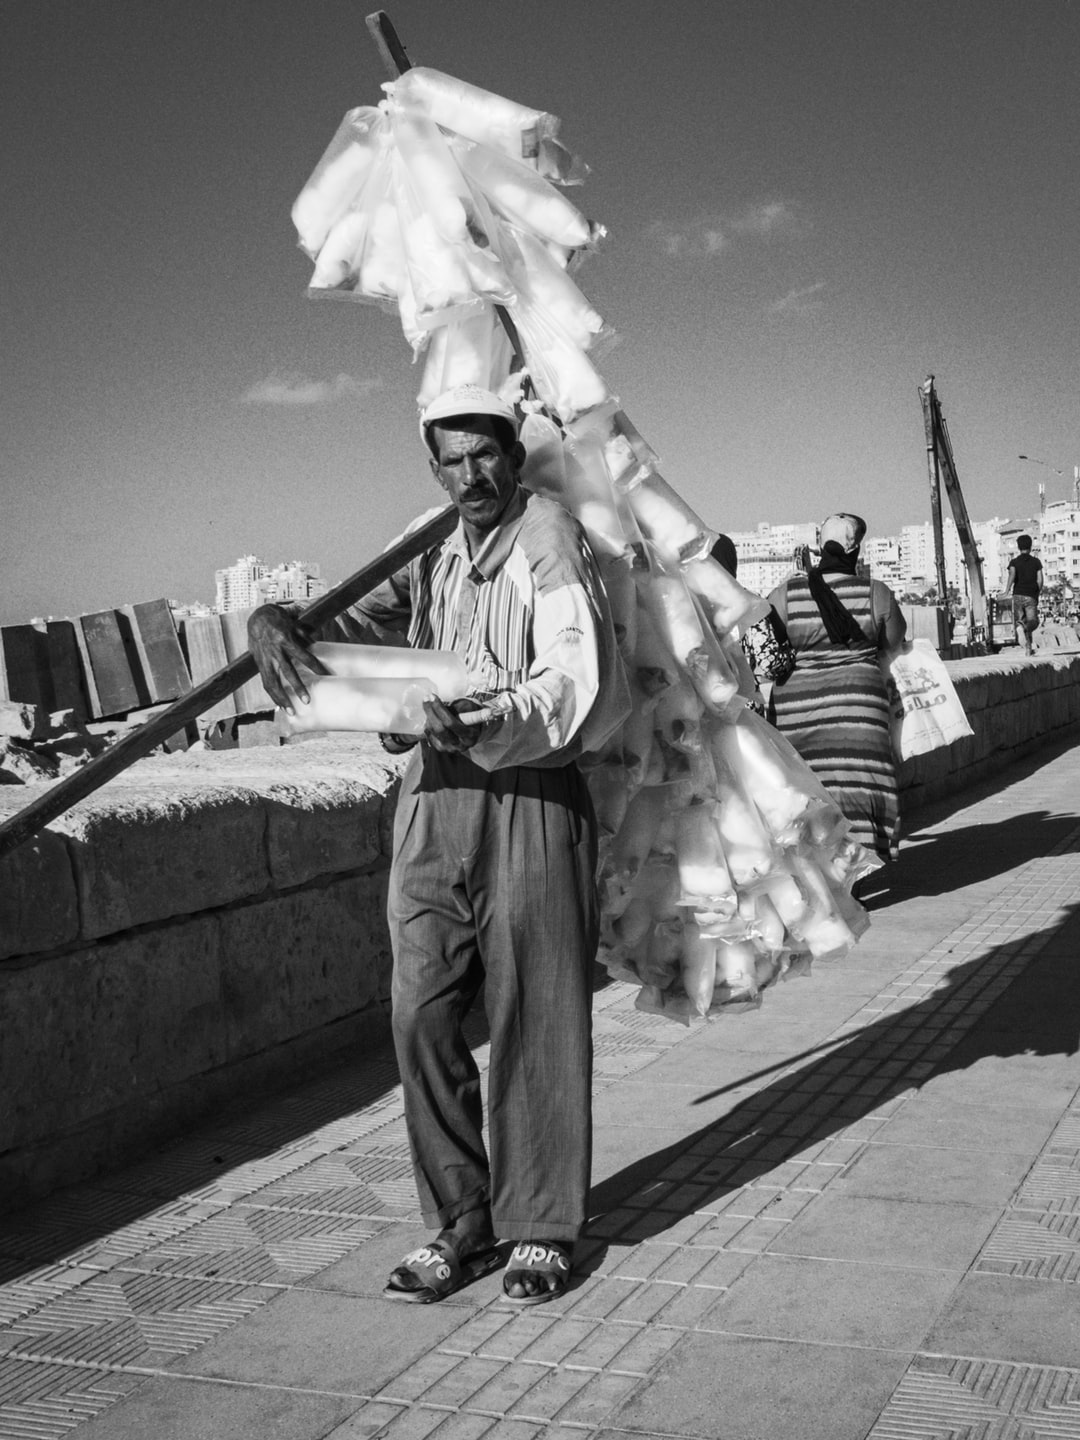 a cotton candy seller at the corniche in alexandria; BW, black and white